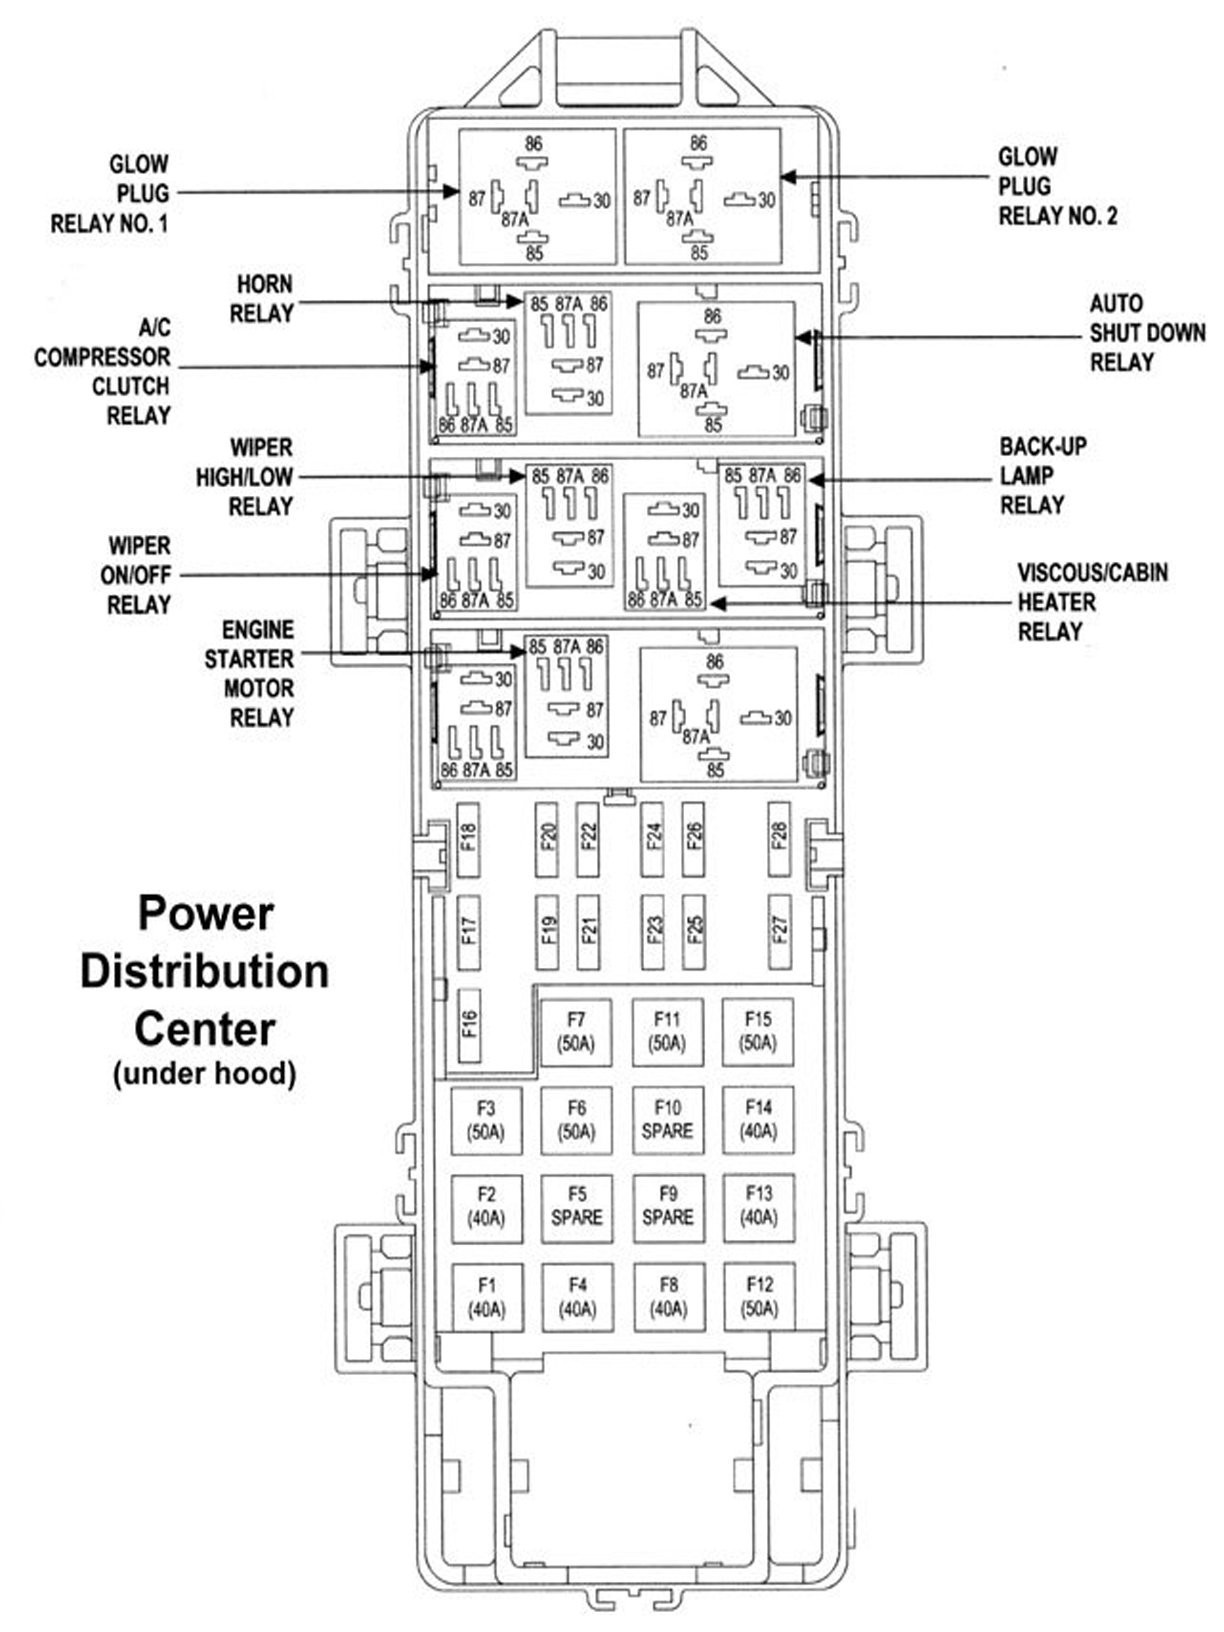 2002 Jeep Grand Cherokee Wiring Harness Diagram : Jeep grand cherokee engine diagram my wiring